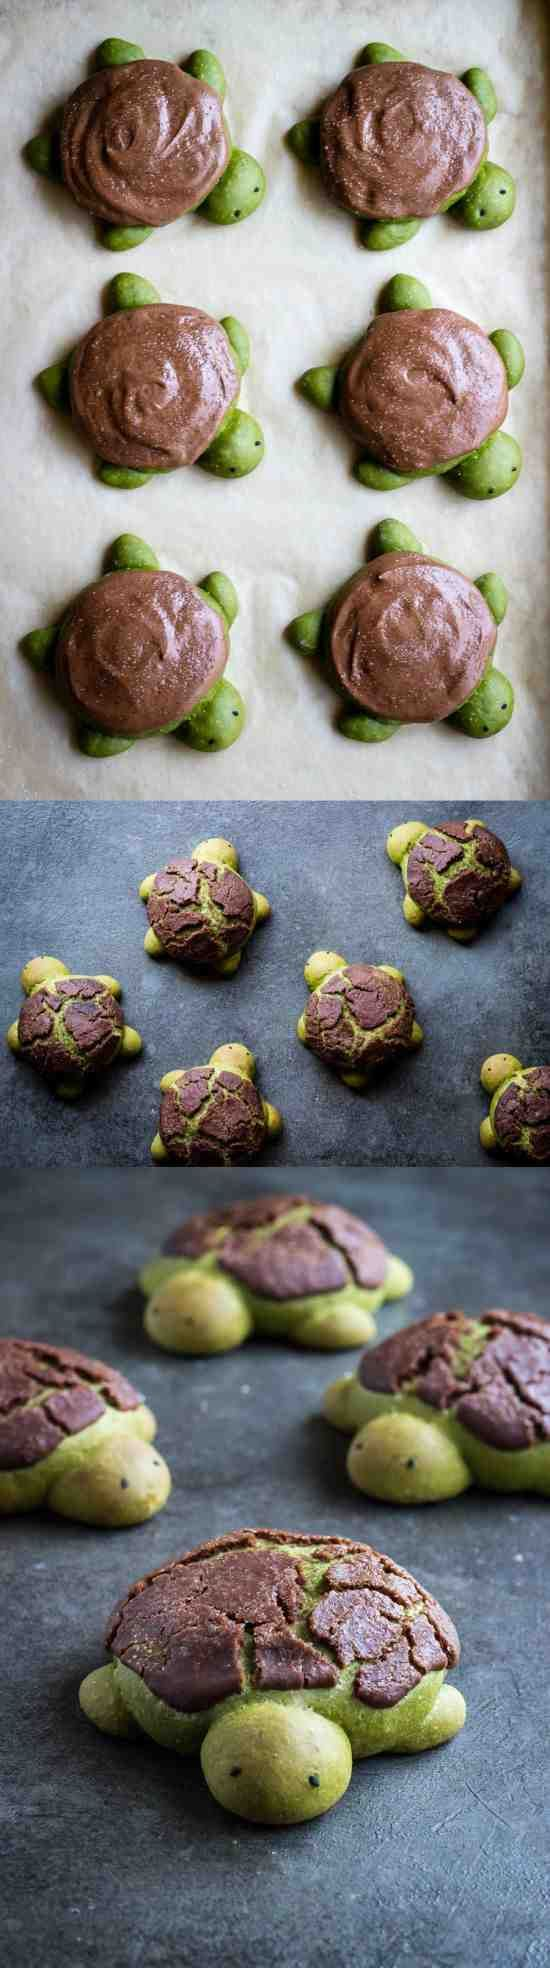 MATCHA MILK BREAD TURTLES | WITH CHOCOLATE DUTCH CRUNCH - bread, chocolate, cookie, dessert, milk, recipes, sesame, vanilla